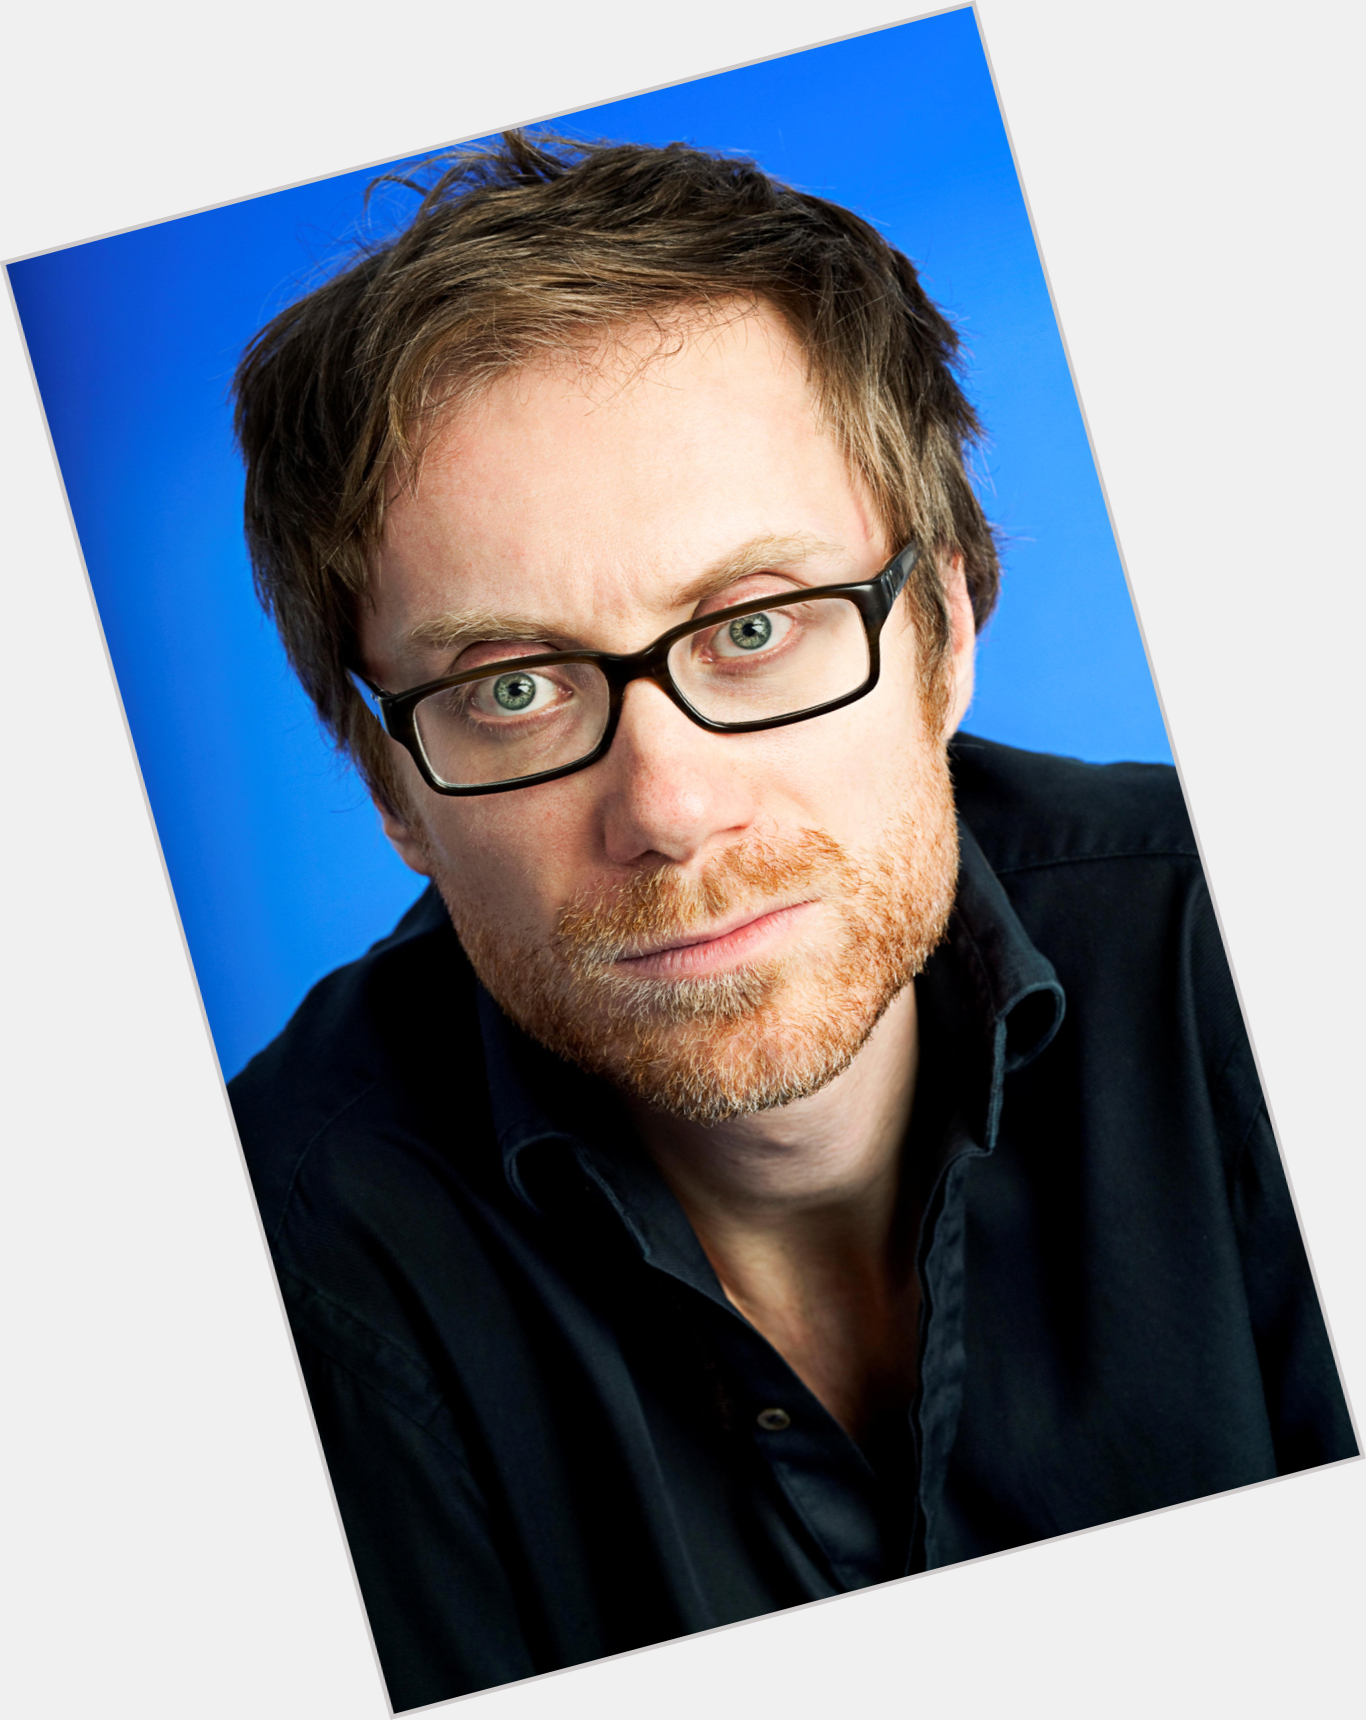 stephen merchant dating Biography of stephen merchant with personal life, career, facts with wiki, bio, married, education, affair, girlfriend, wife, business, net worth, salary.